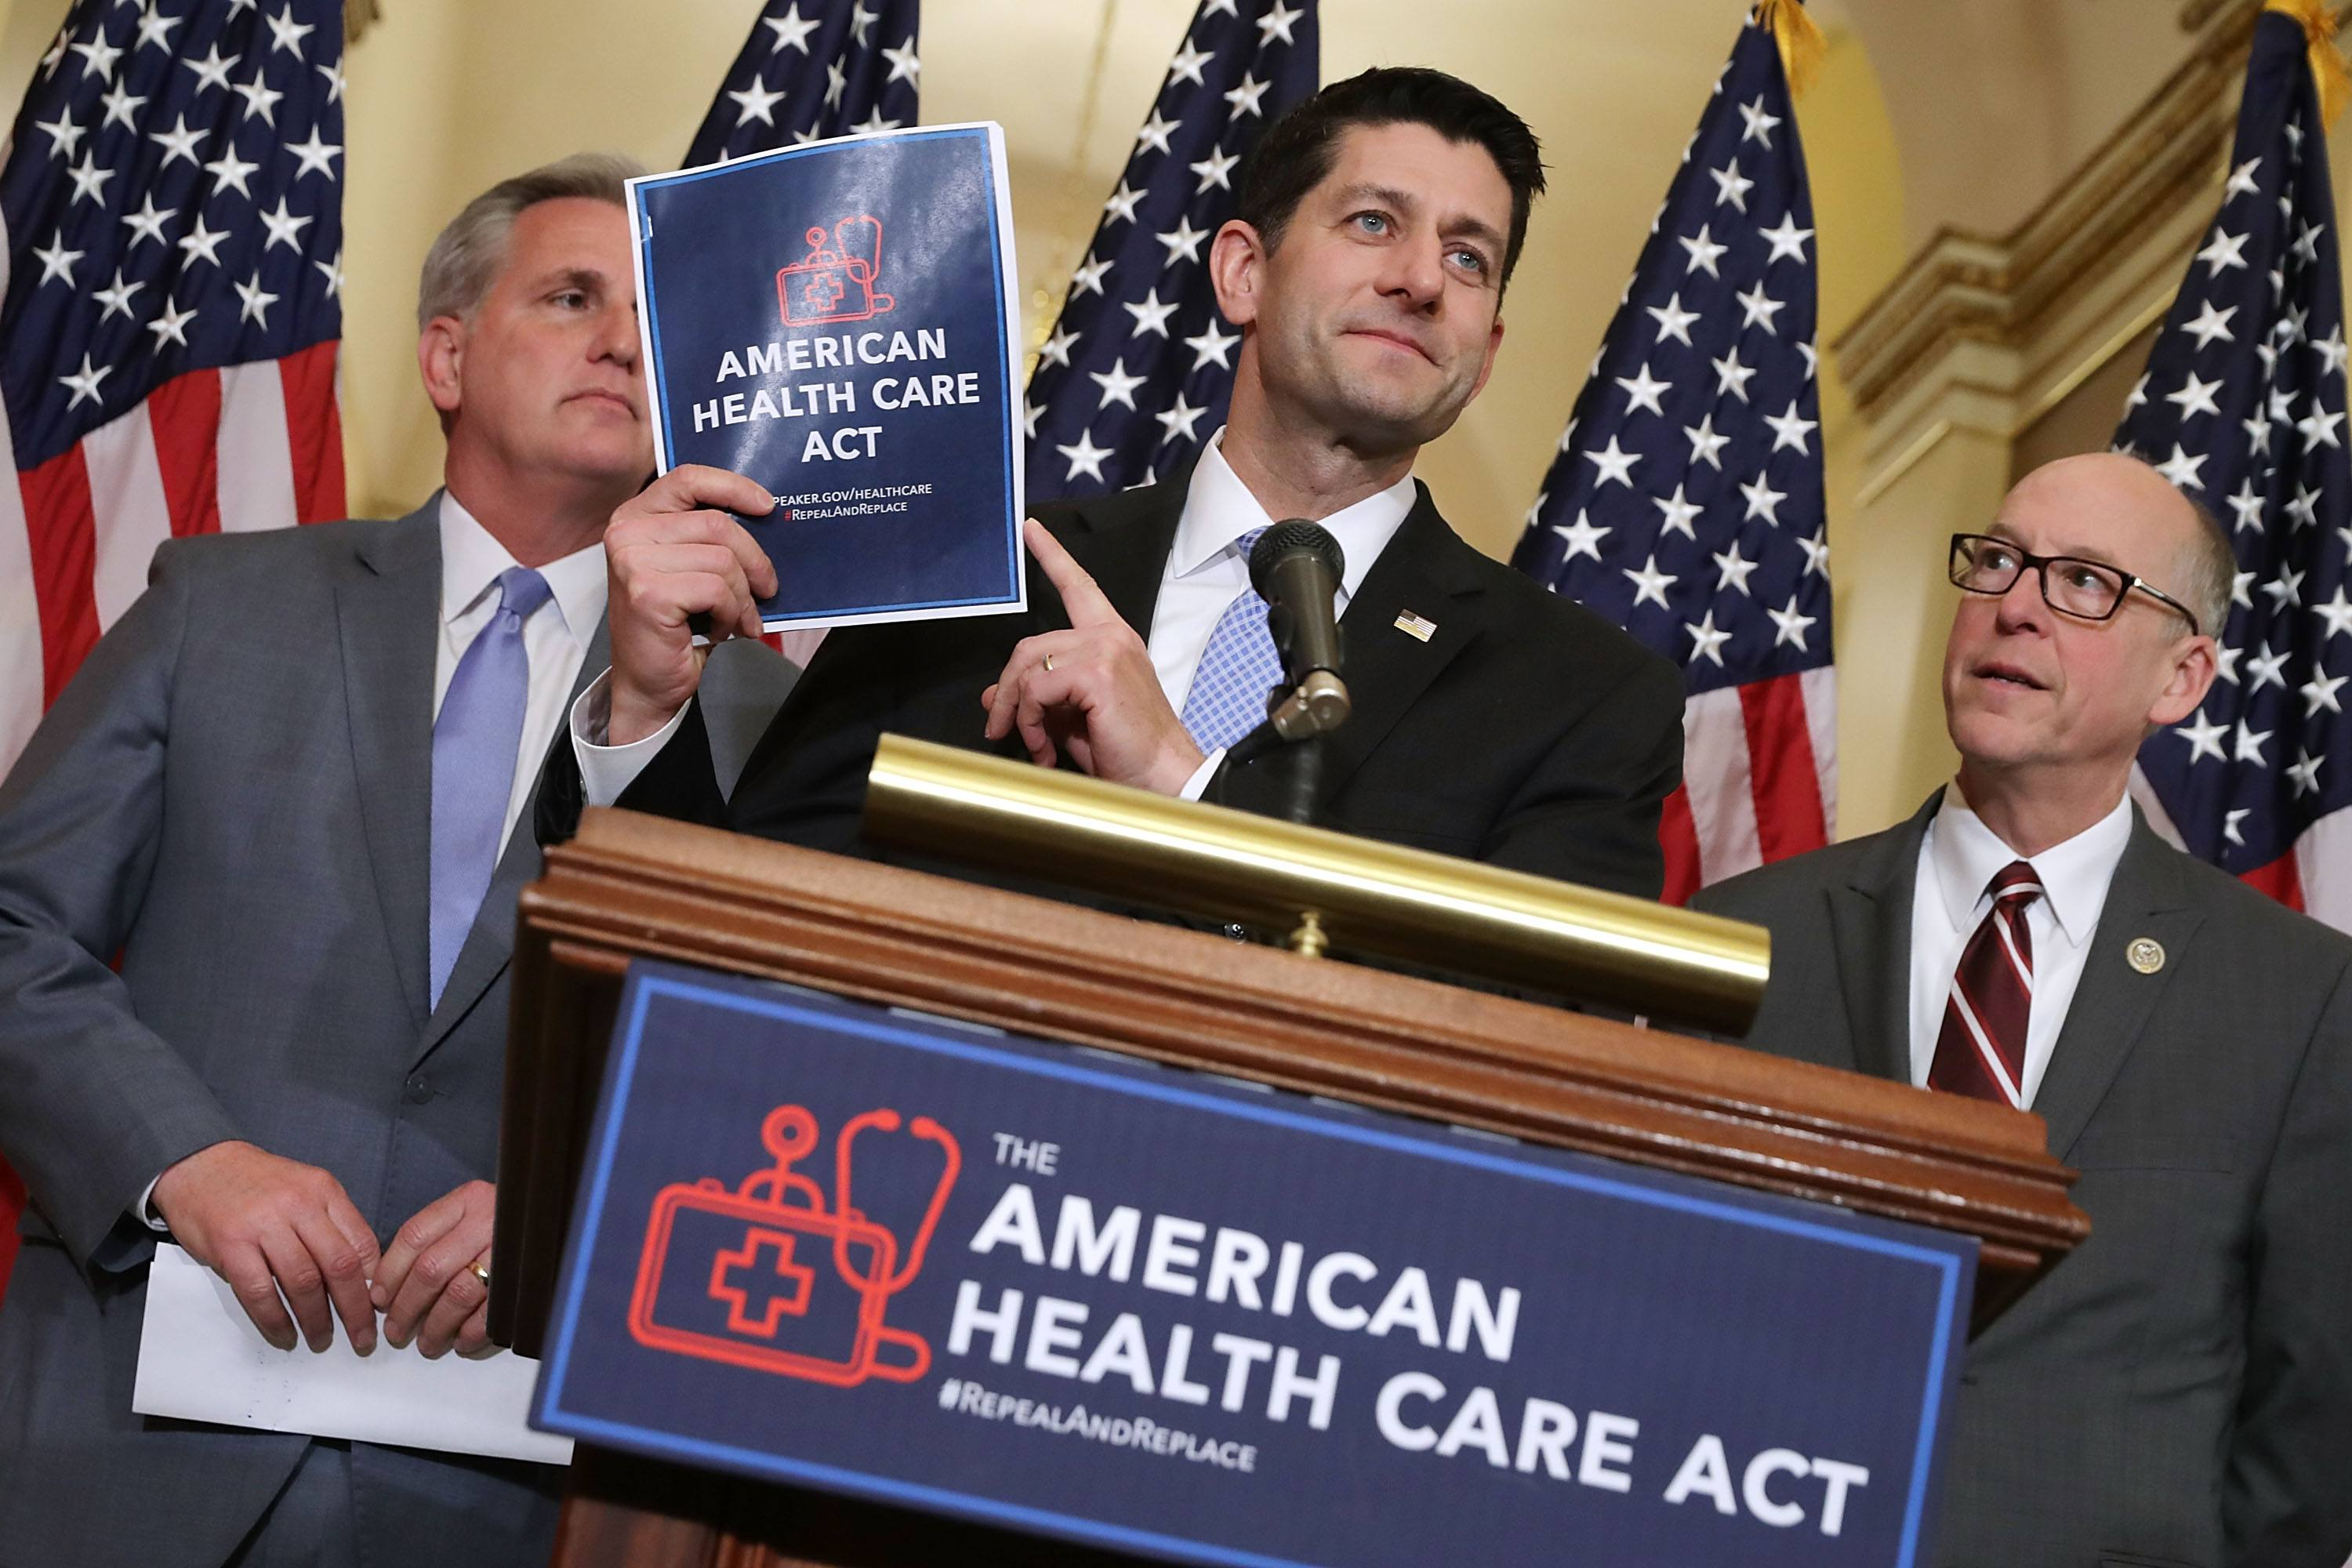 Paul Ryan speaking at a podium on the American Healthcare Act